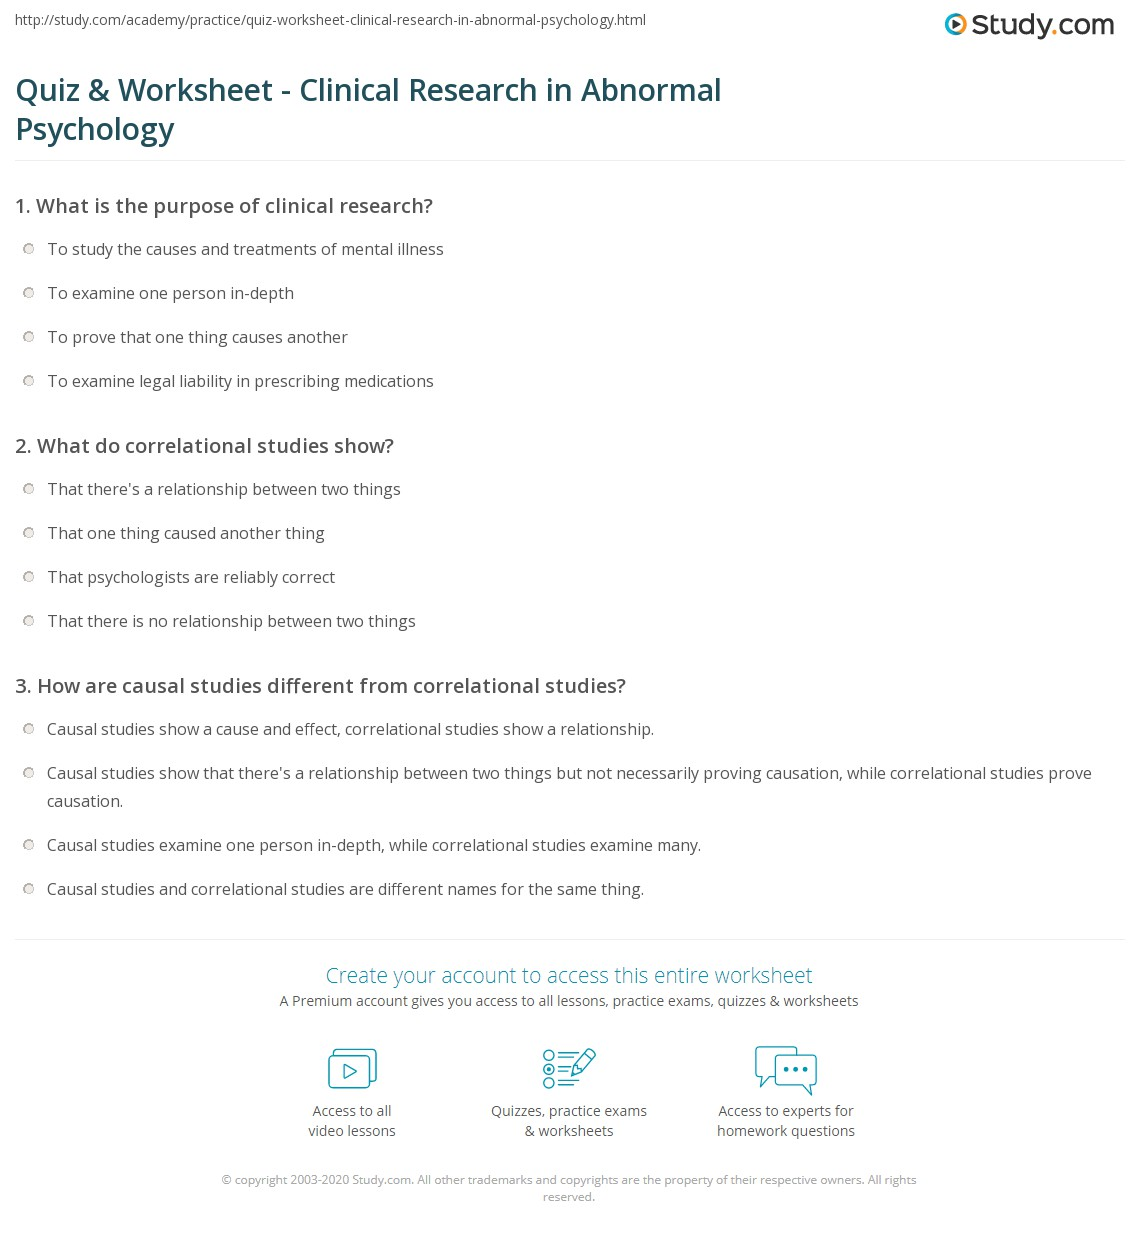 Quiz Worksheet Clinical Research In Abnormal Psychology Study